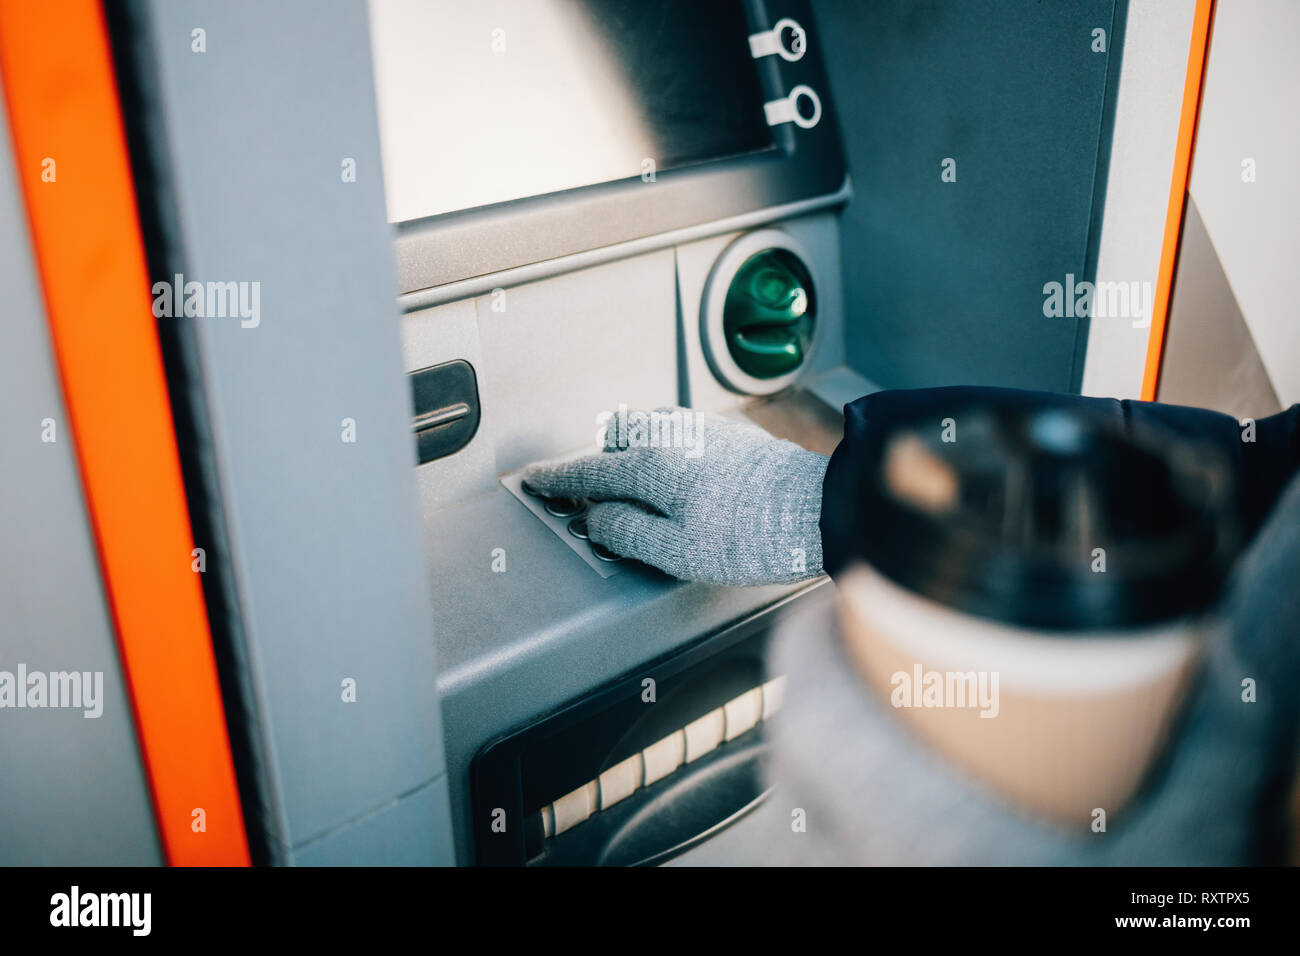 Close-up of young woman's hands holding coffee and entering PIN on ATM keypad on city street in winter day. - Stock Image